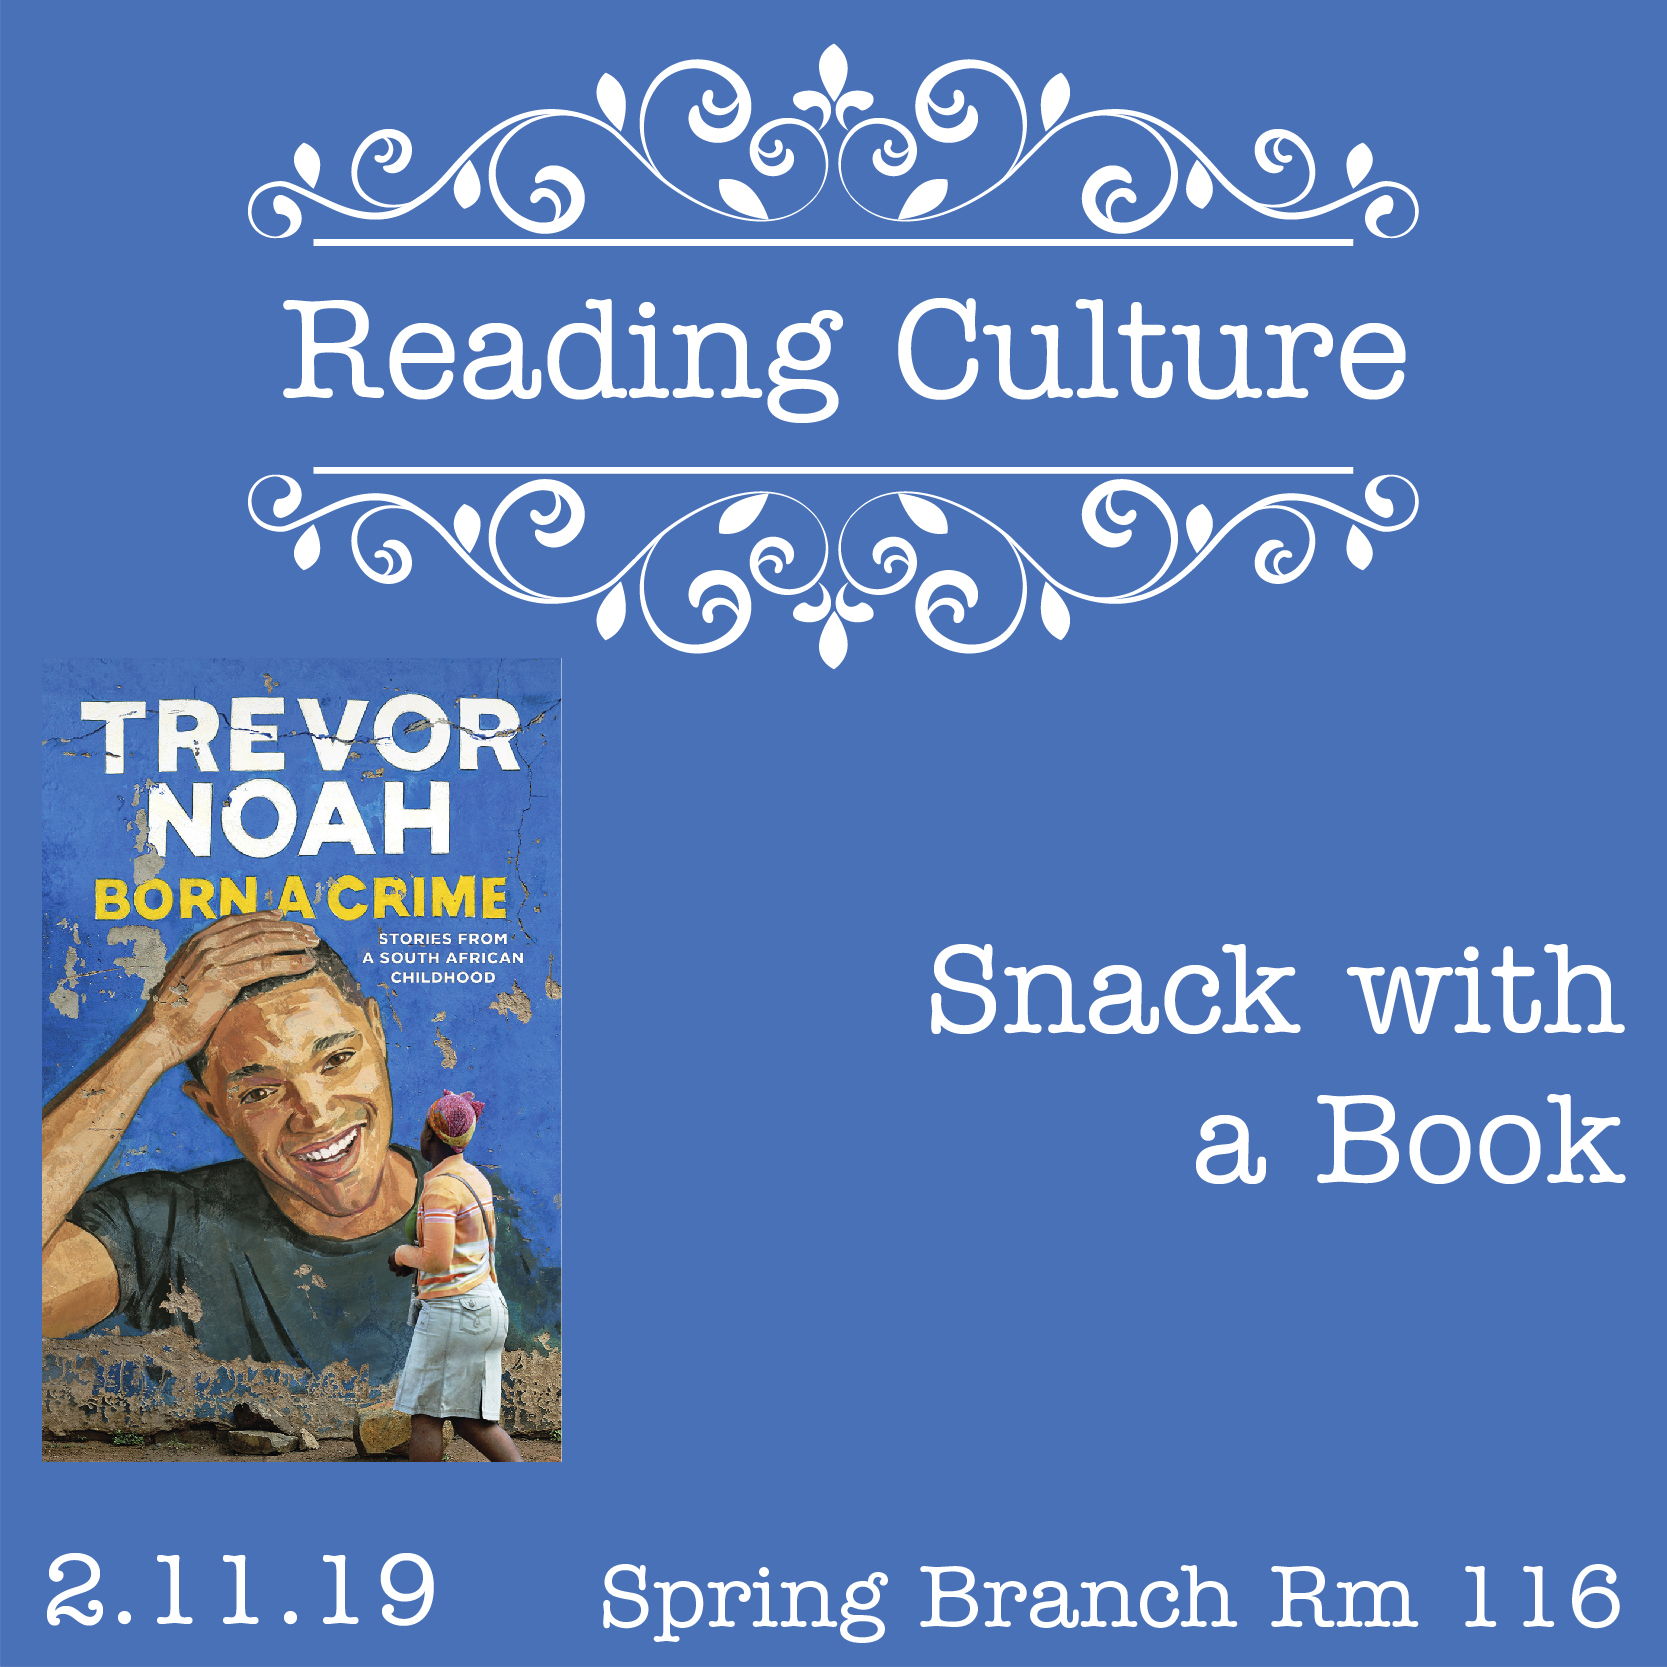 [SB] Reading Culture: Snack with a Book (Room 116)